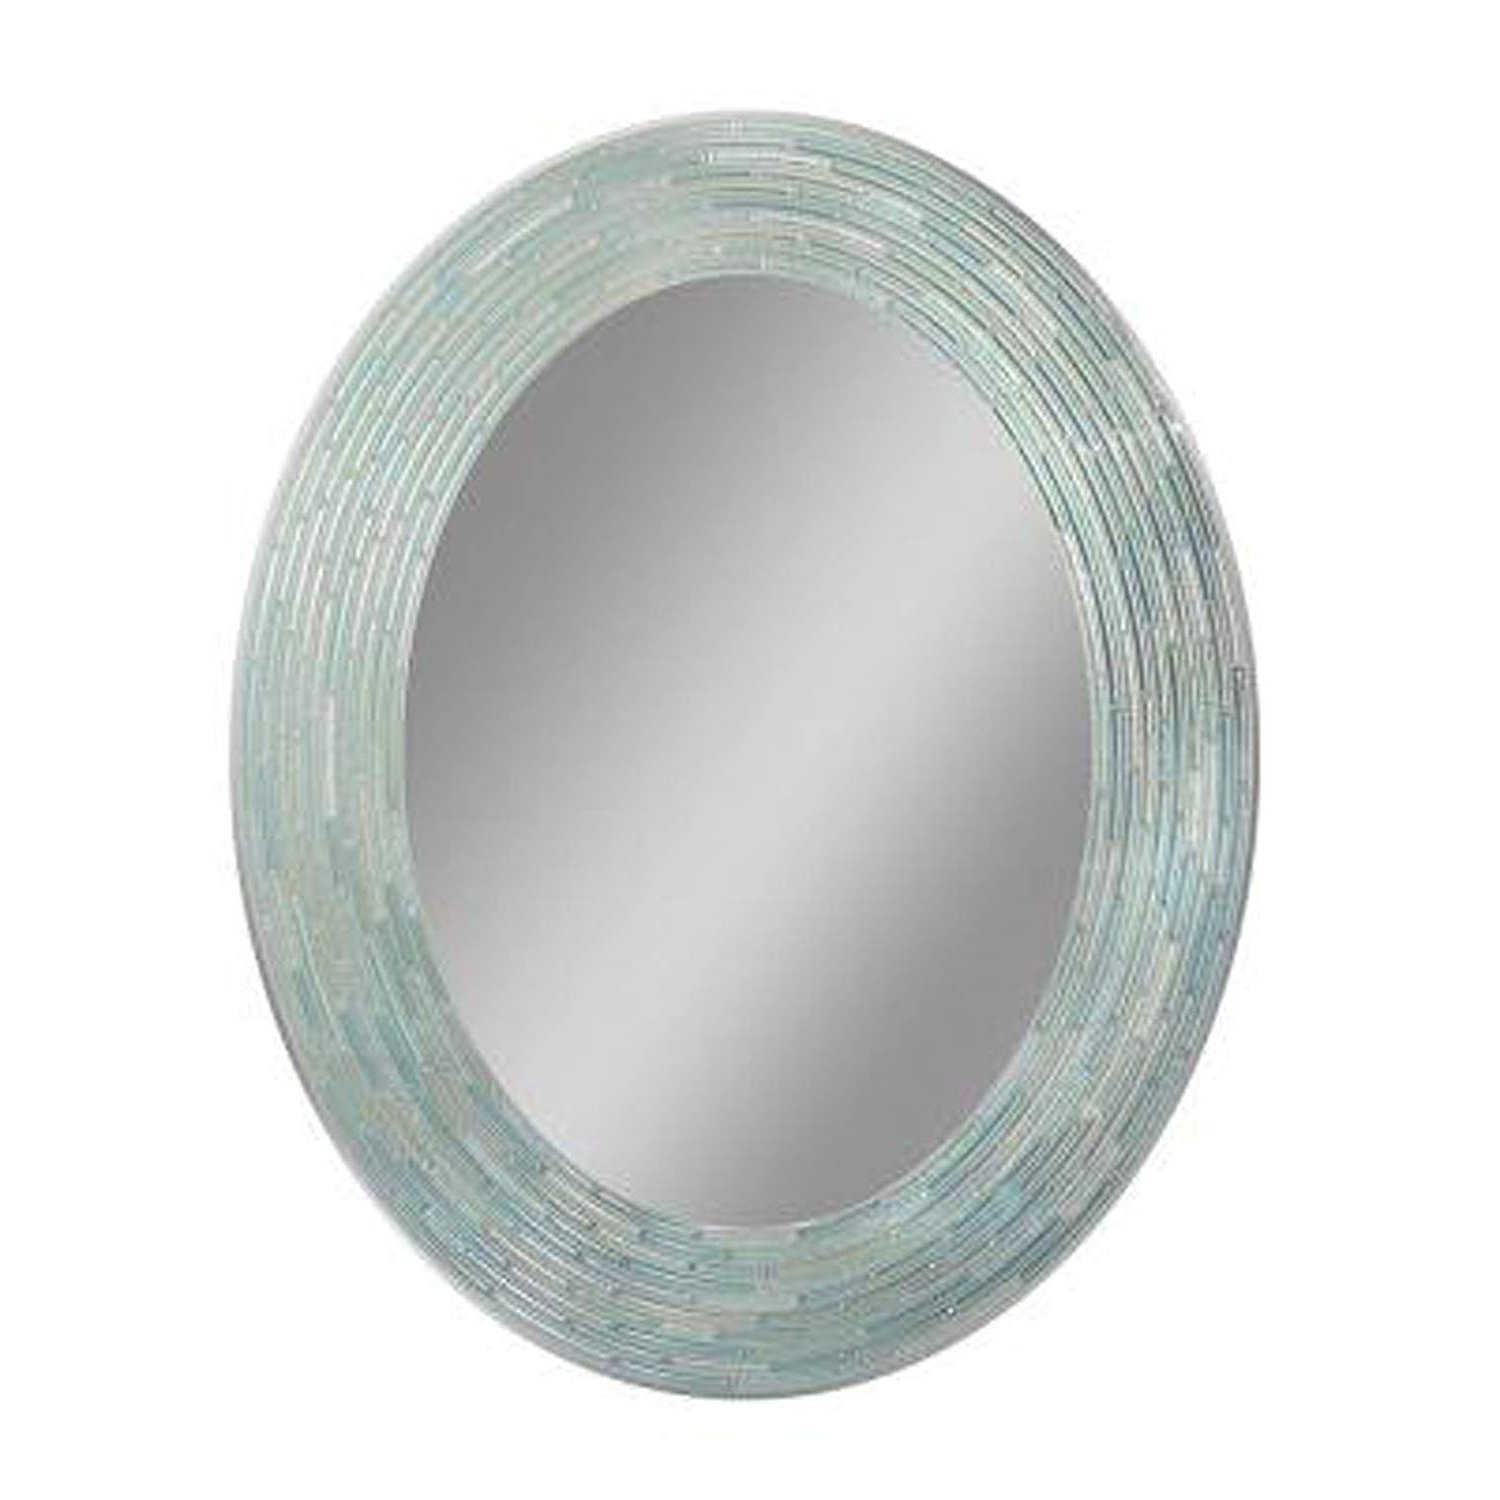 "Most Recent Headwest Reeded Sea Glass Oval Wall Mirror, 29 Inches23 Inches, 29"" X 23"" Within Aqua Wall Mirrors (View 11 of 20)"